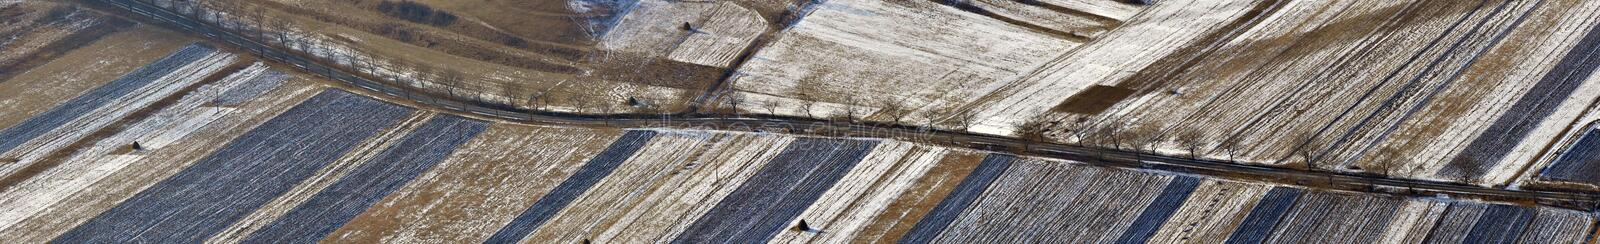 Download Aerial View Of Agricultural Meadows And Fields Stock Photo - Image: 22812752